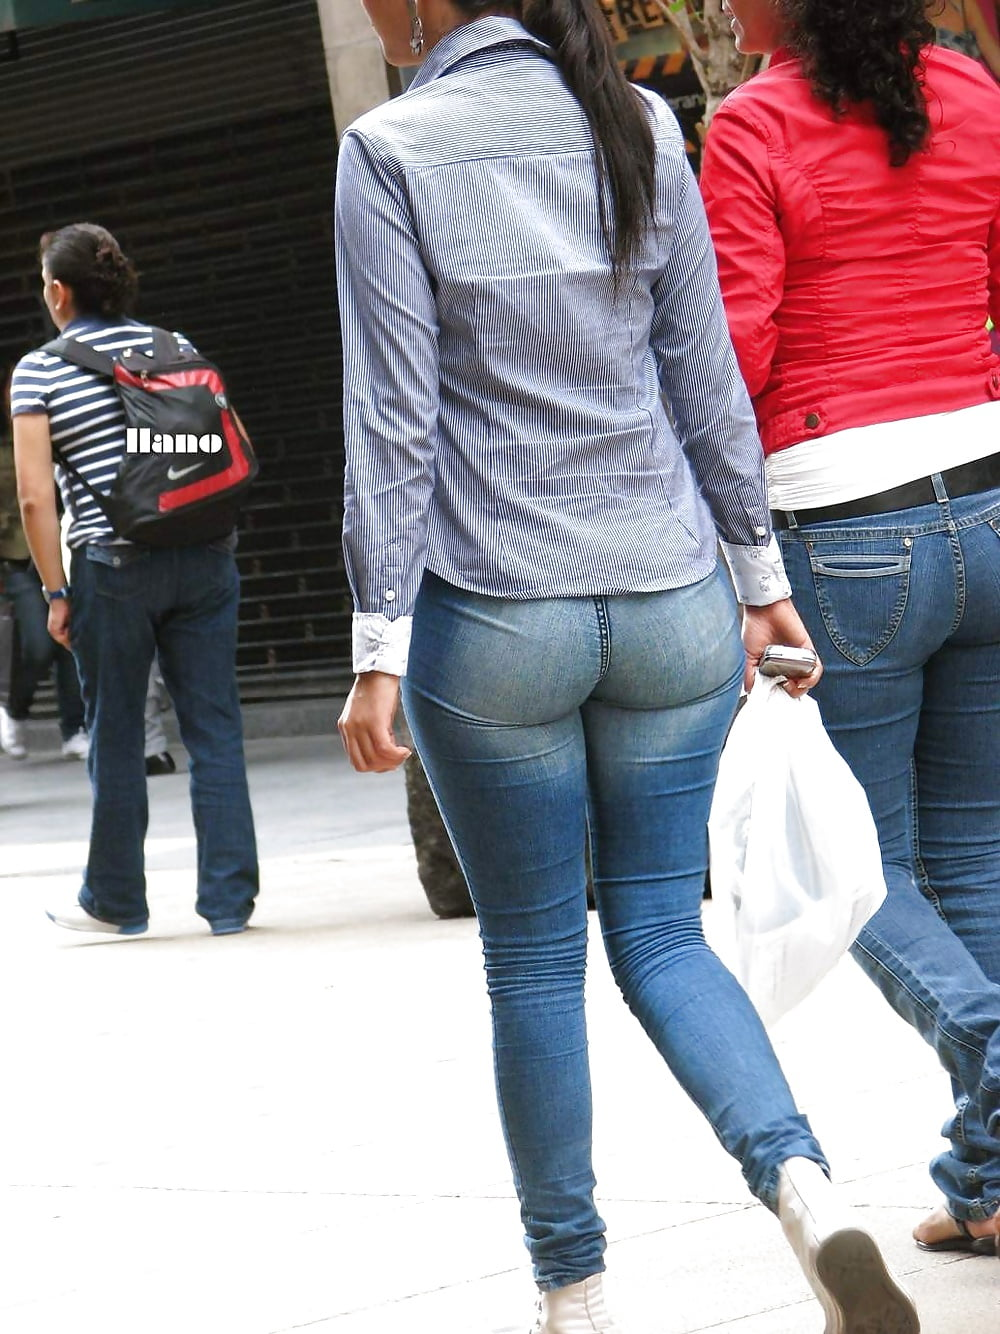 candid-ass-jeans-shaven-fat-pussy